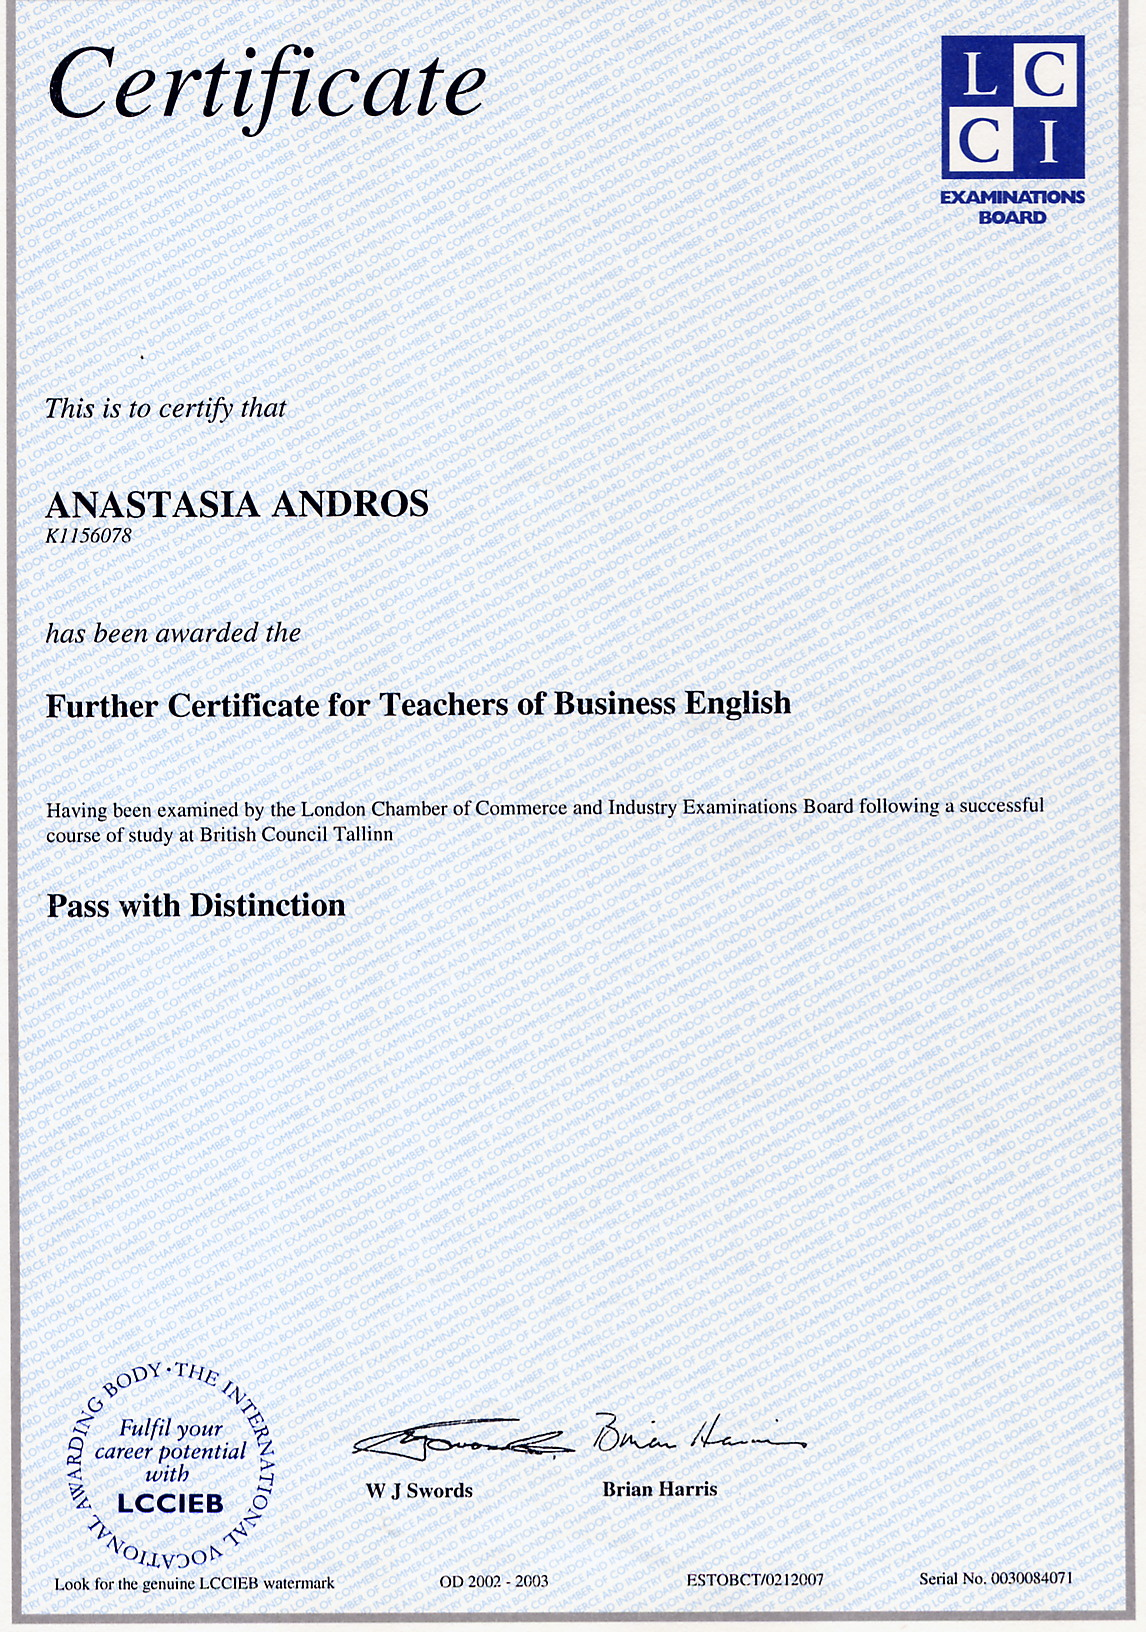 Further Certificate for Teachers of Business English, Distinction, Anastasia Andros